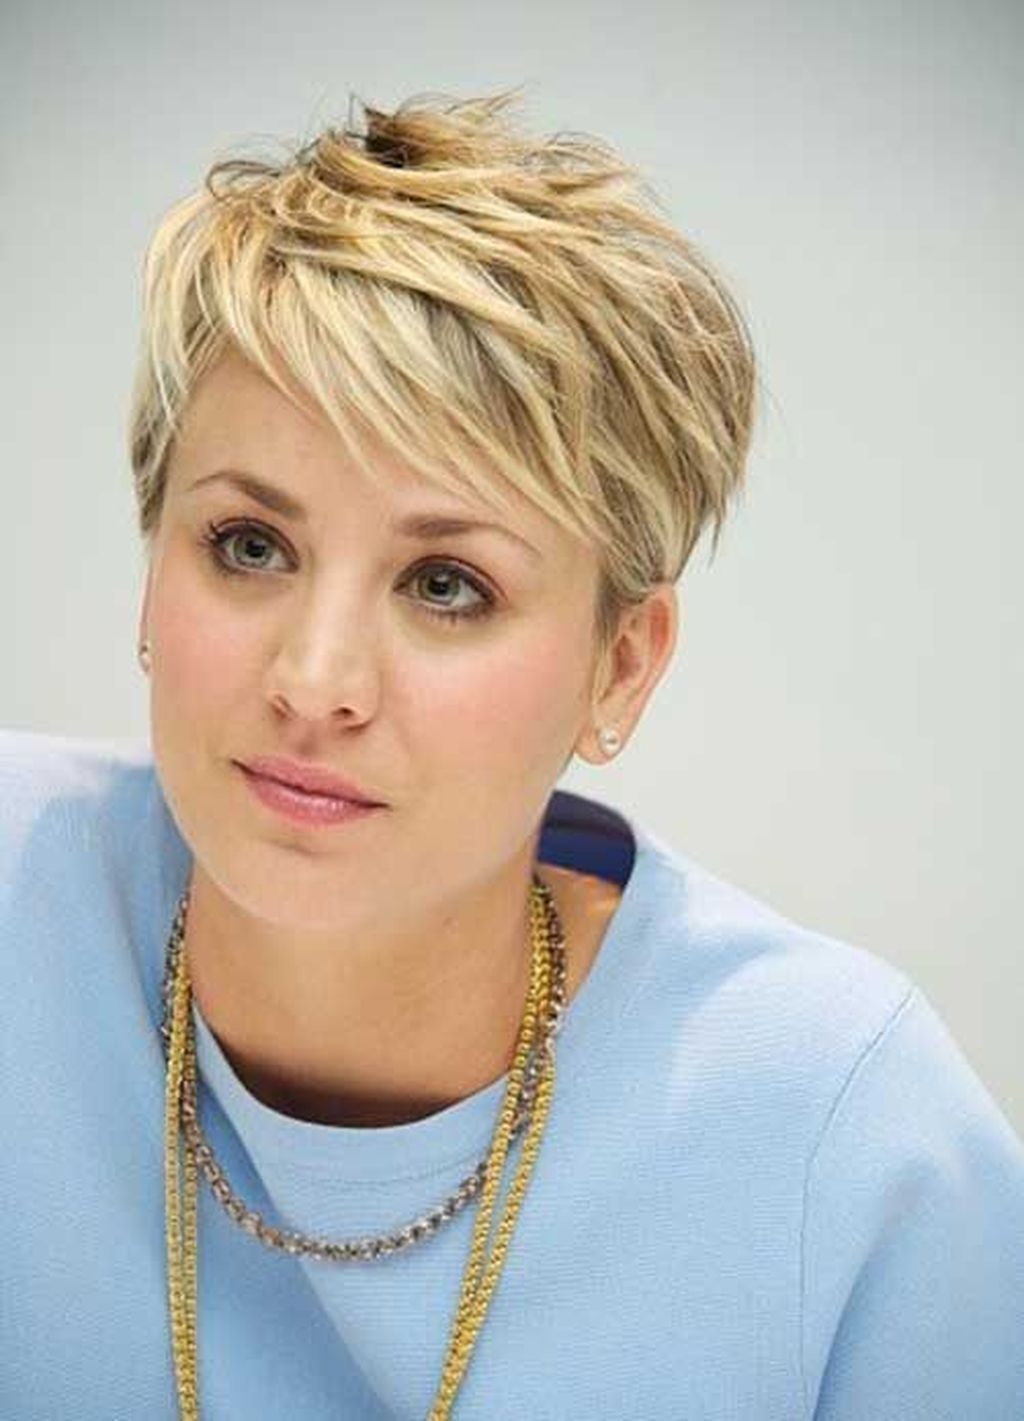 Short Pixie Hairstyles Cropped Haircut Topsimages